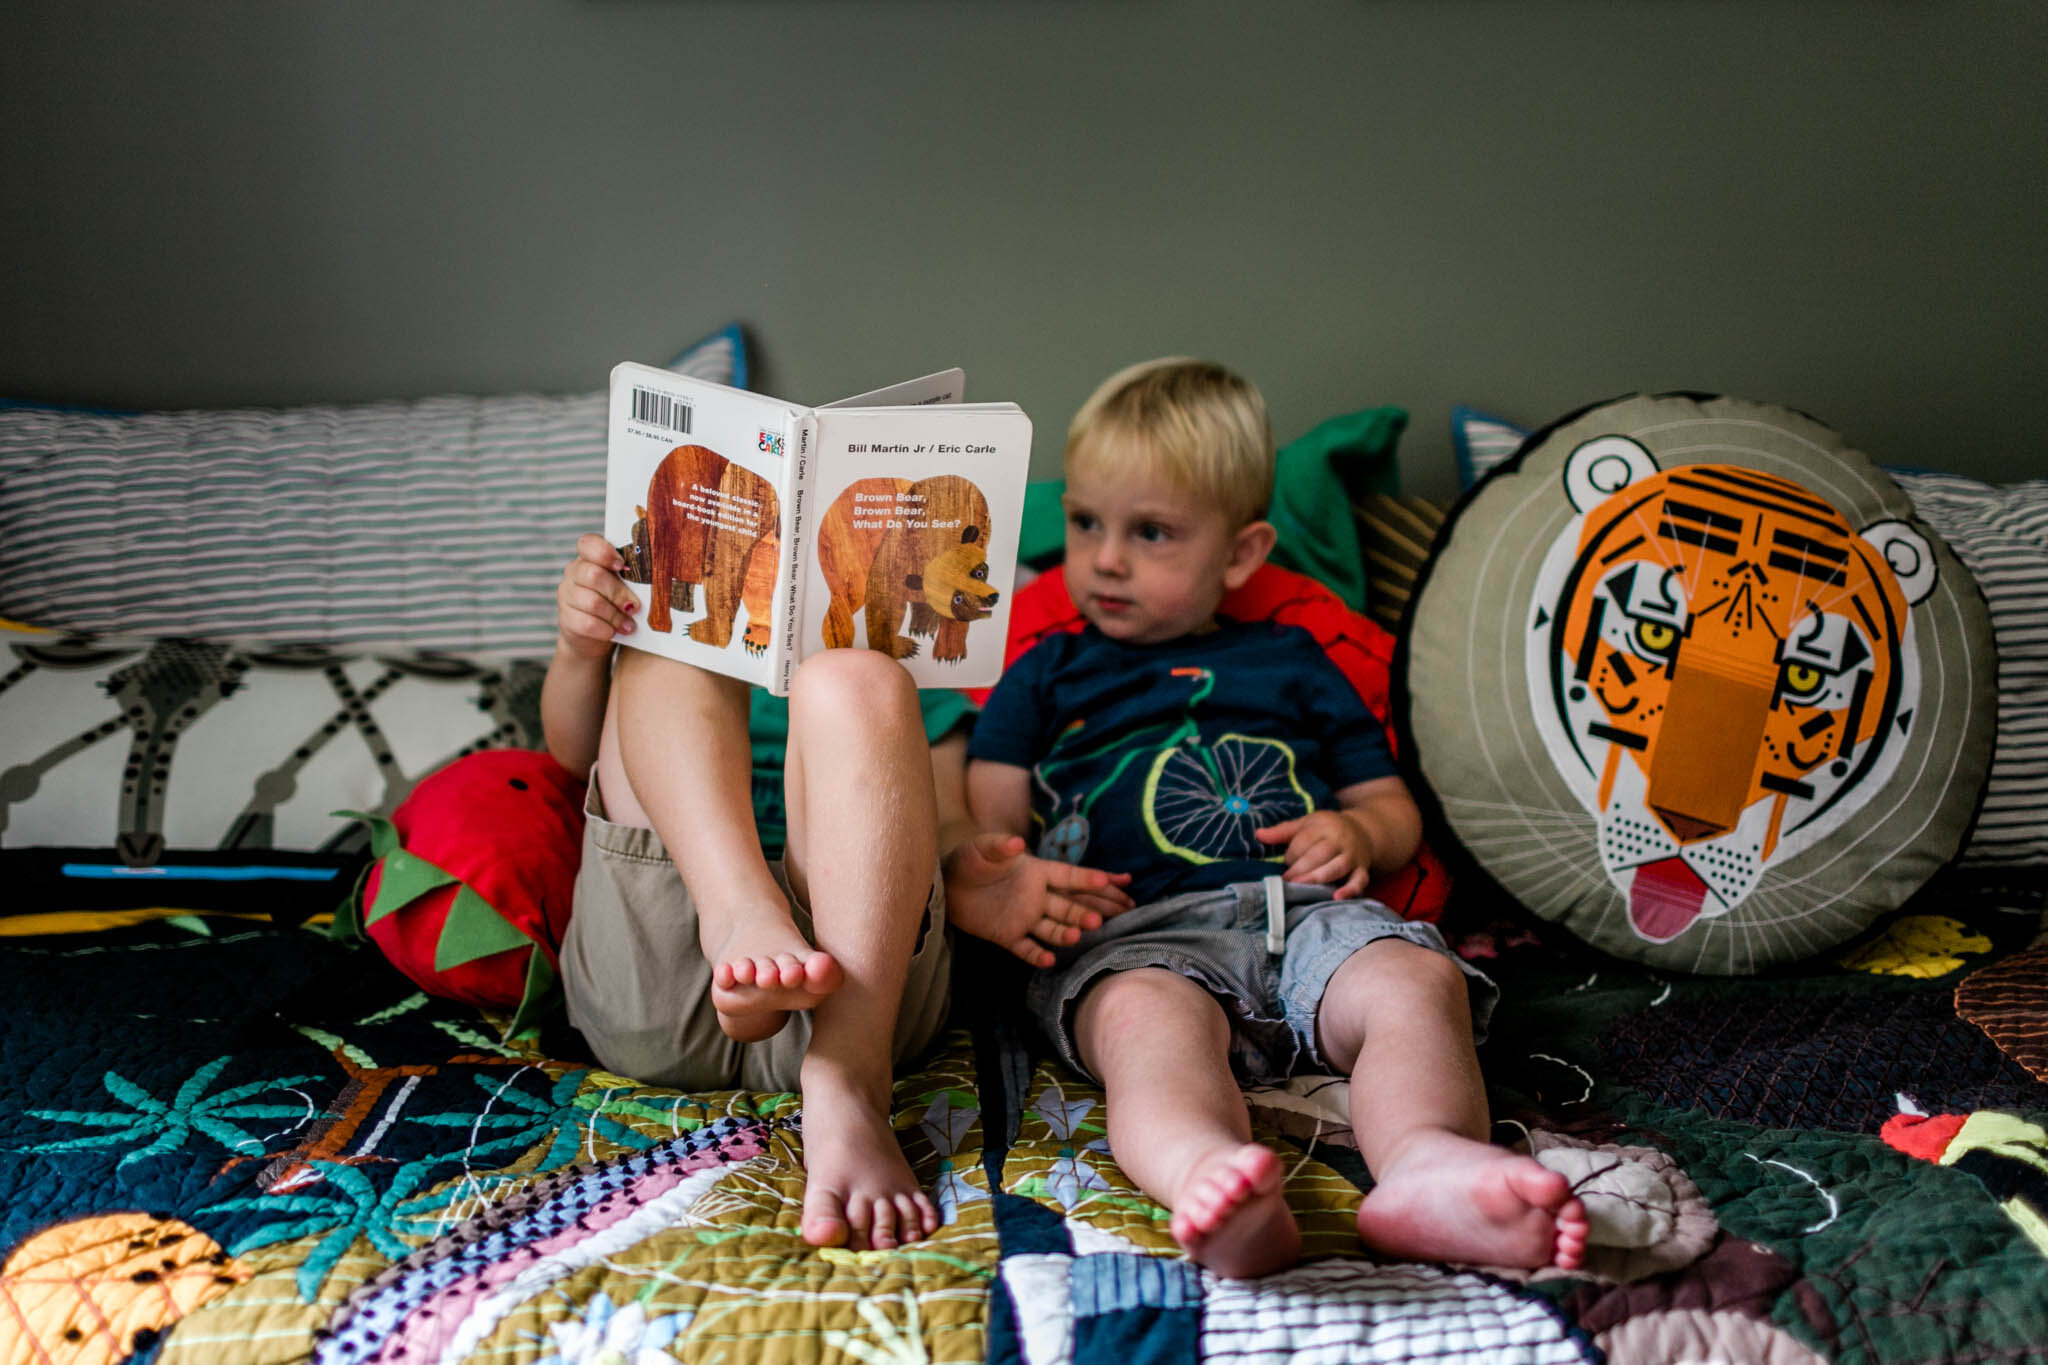 Durham Newborn Photographer | By G. Lin Photography | Older brother reading book to sibling